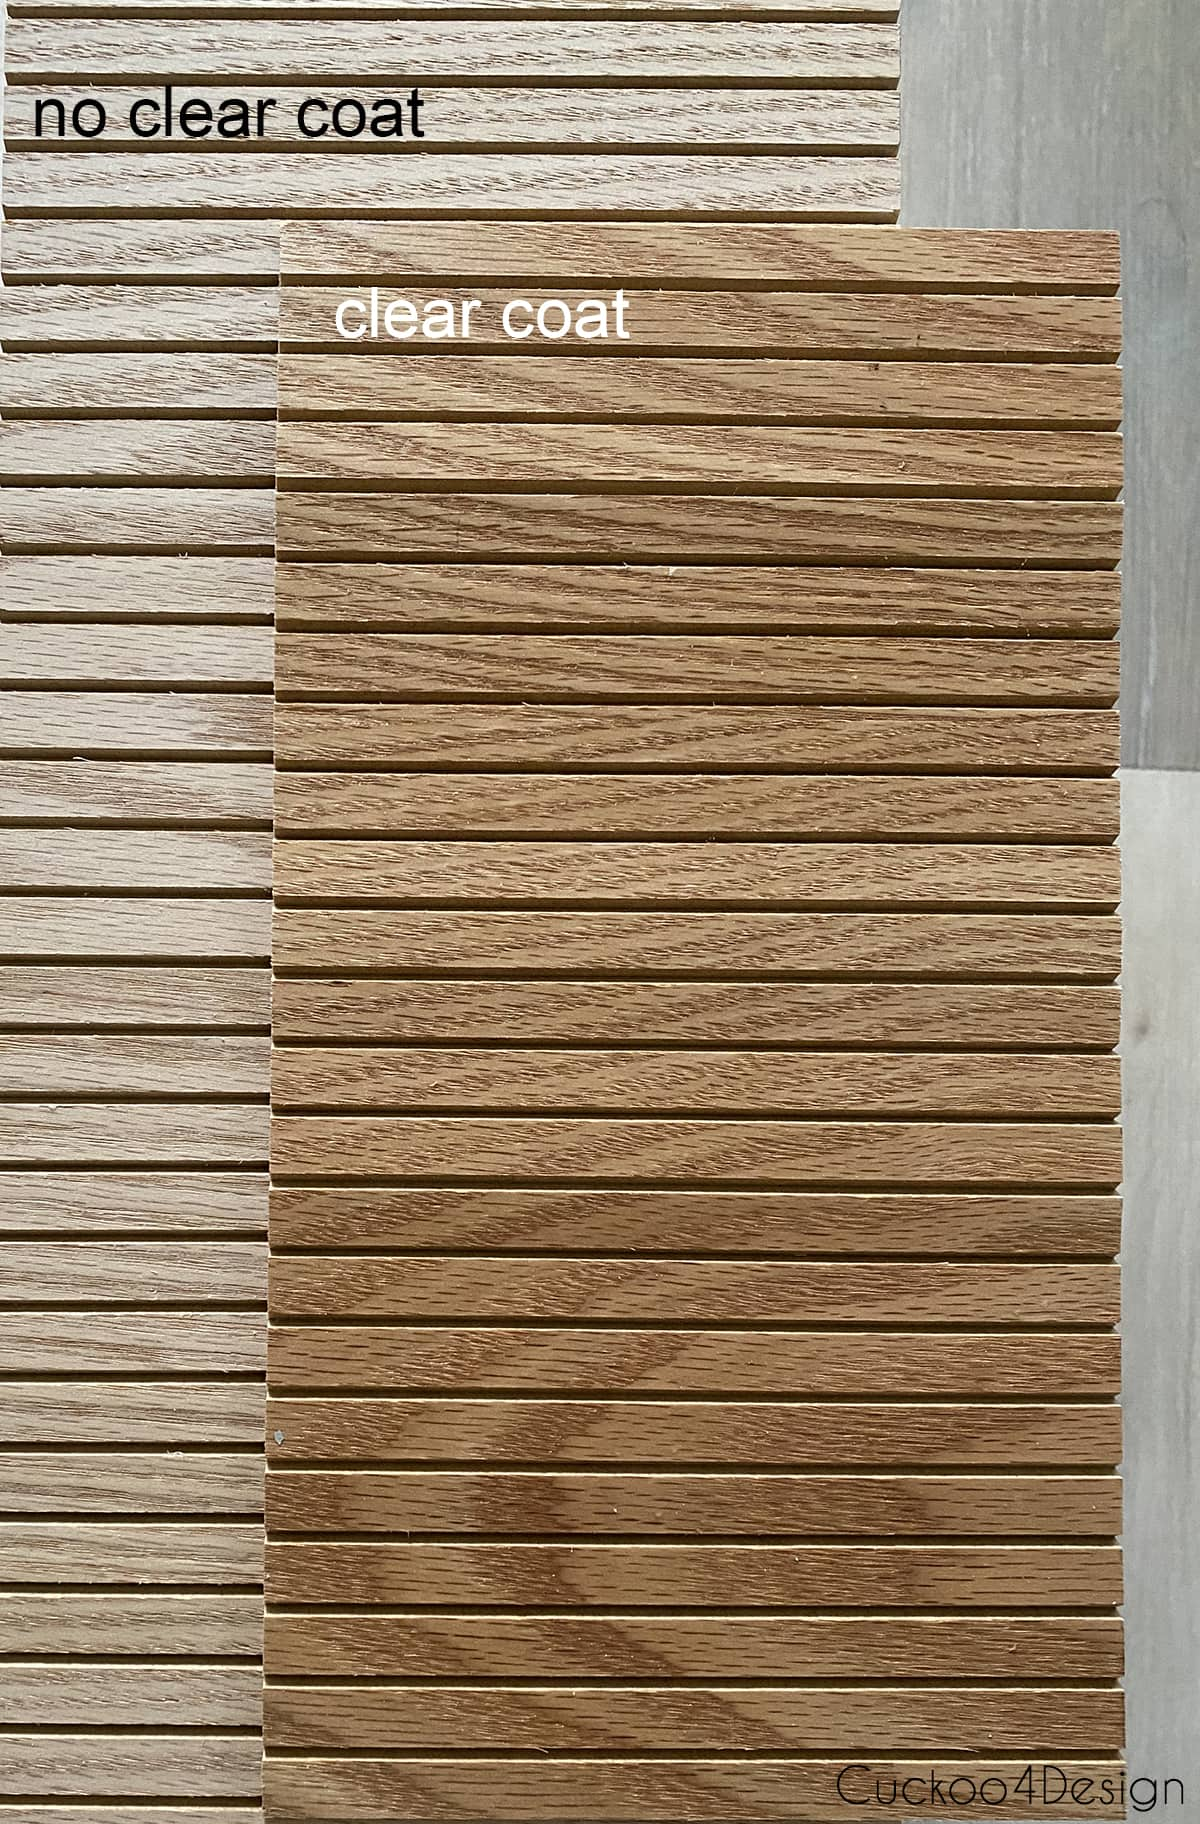 comparing clear coated oak to plain oak